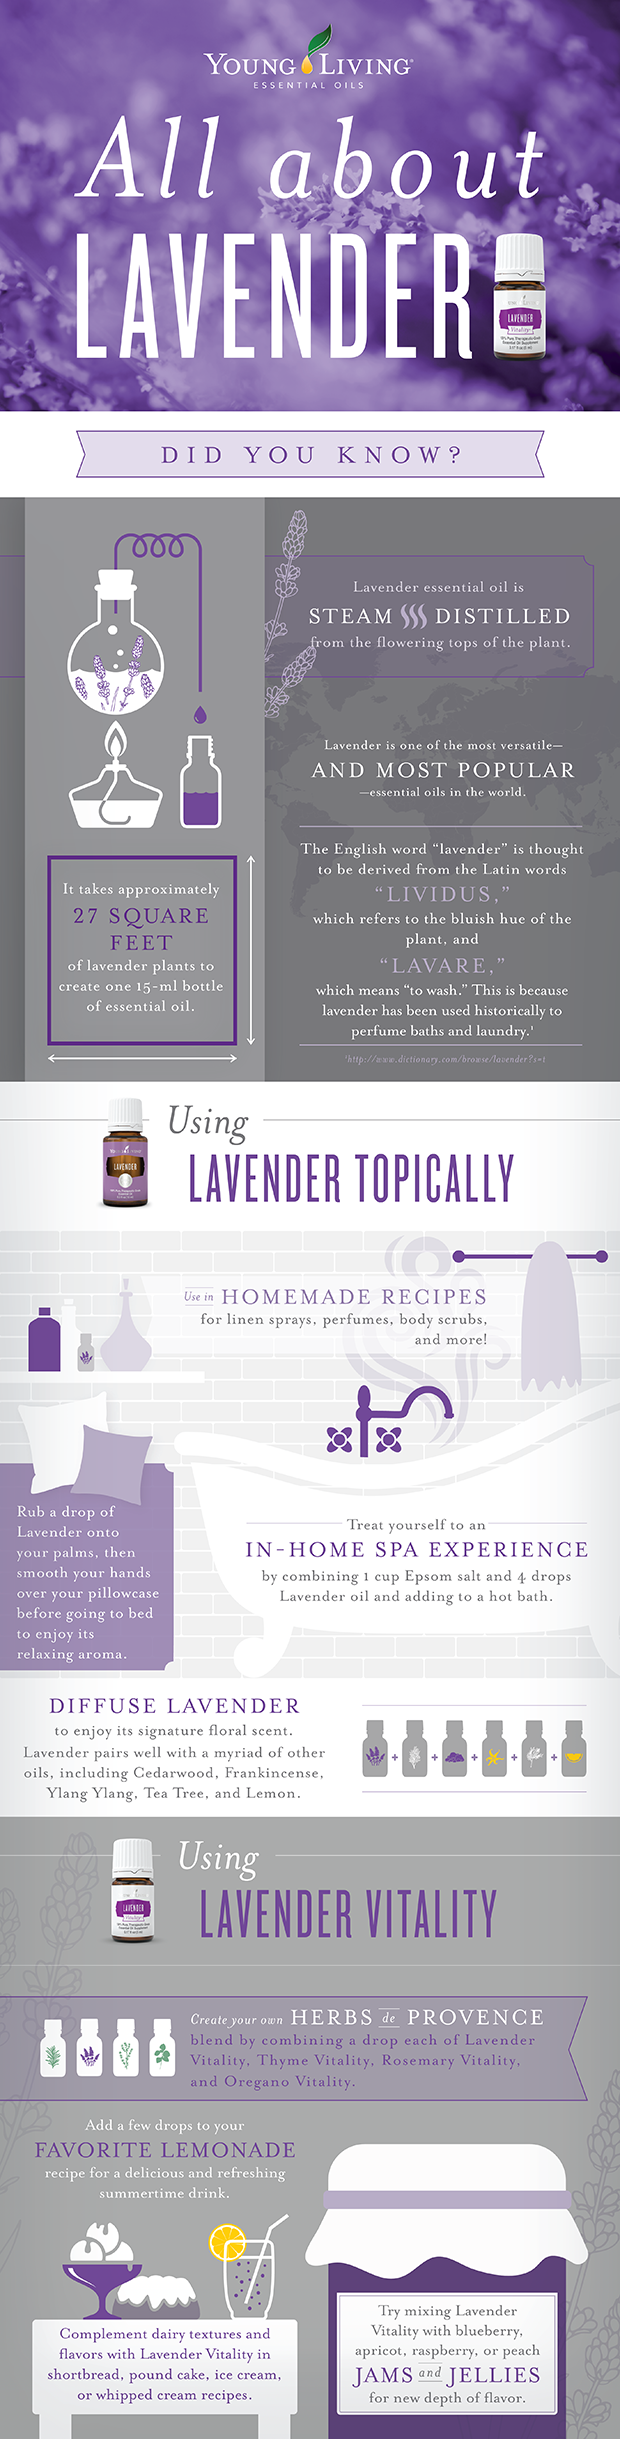 Young Living All About Lavender infographic- Lavender Essential Oil and Lavender Vitality Essential Oil and Uses